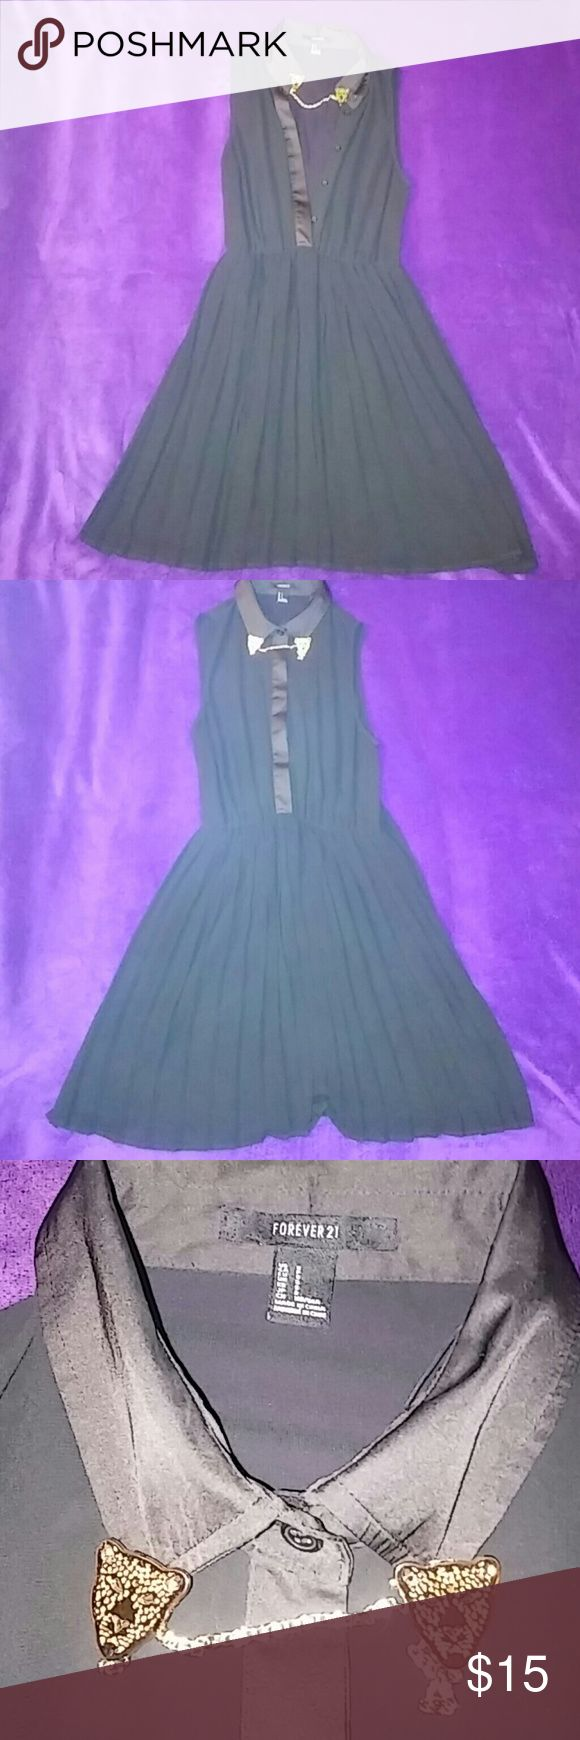 "Forever 21 Black Dress EUC Practically New. Removable gold tiger collar chain. All bottons intact. 100% sheer polyester. Super Sexy I am 5'6"" and the dress falls at finger tips ""mid thigh"" Forever 21 Dresses Mini"